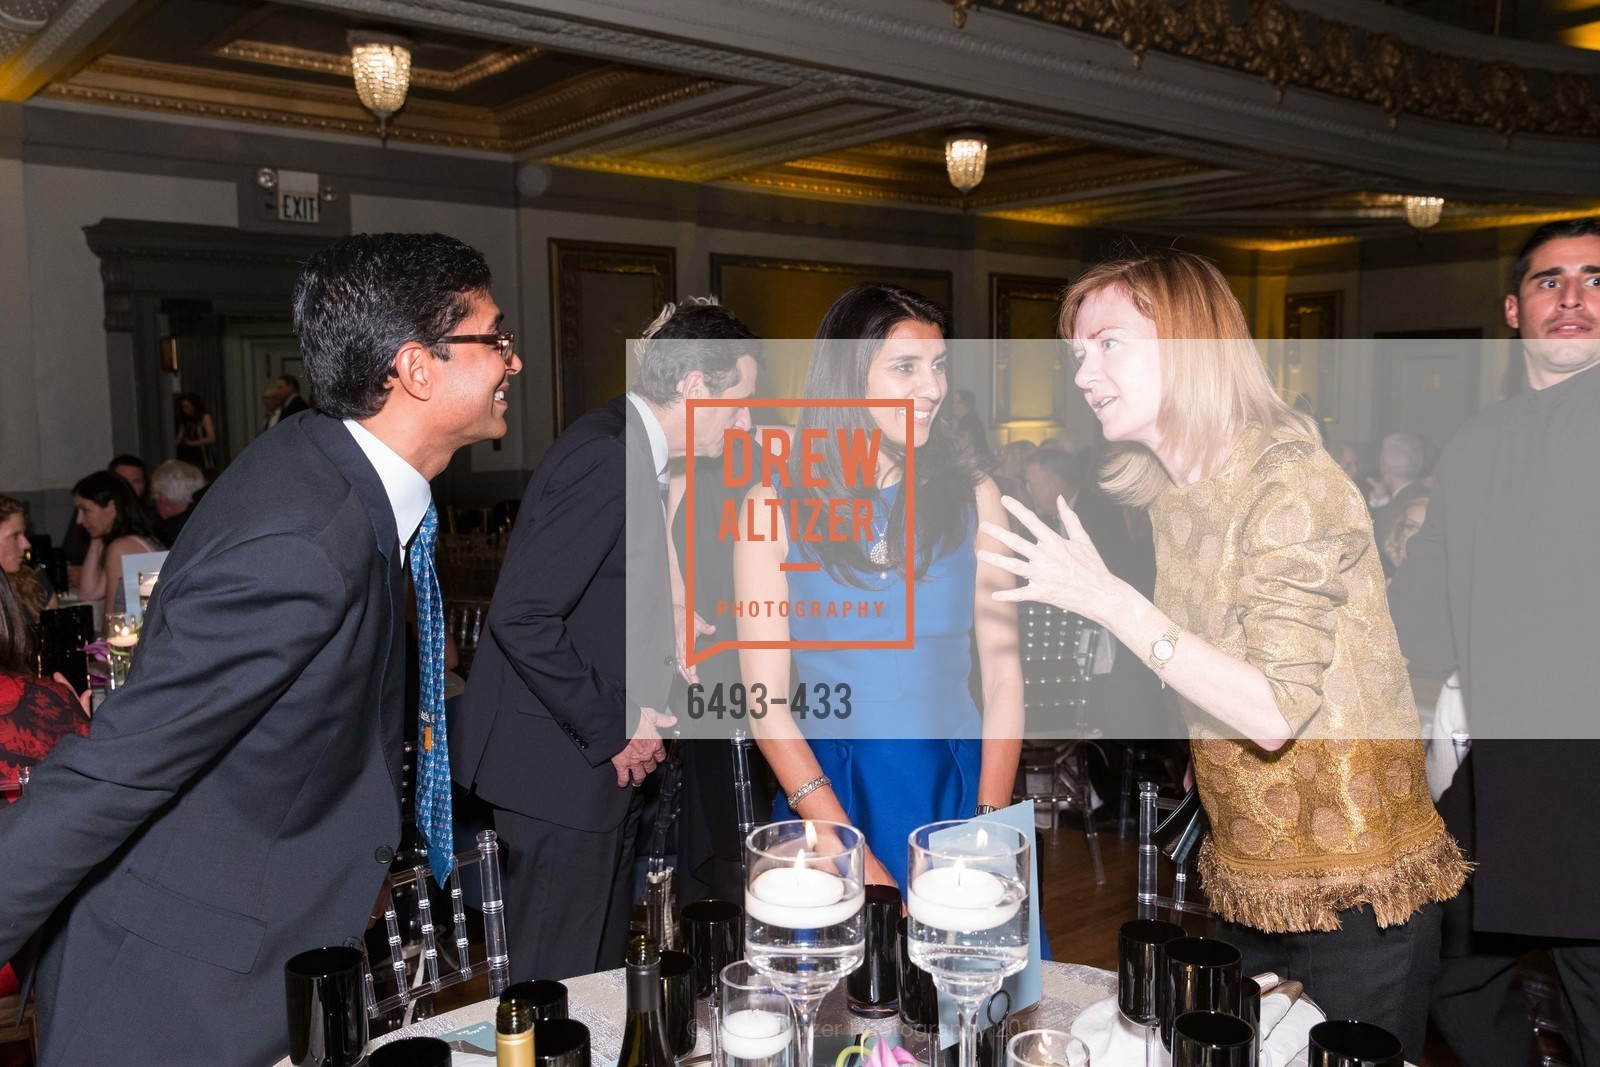 Ravin Agrawal, Alka Agrawal, Katie Paige, SFMOMA Contemporary Vision Award, Regency Ballroom. 1300 Van Ness, November 3rd, 2015,Drew Altizer, Drew Altizer Photography, full-service event agency, private events, San Francisco photographer, photographer California